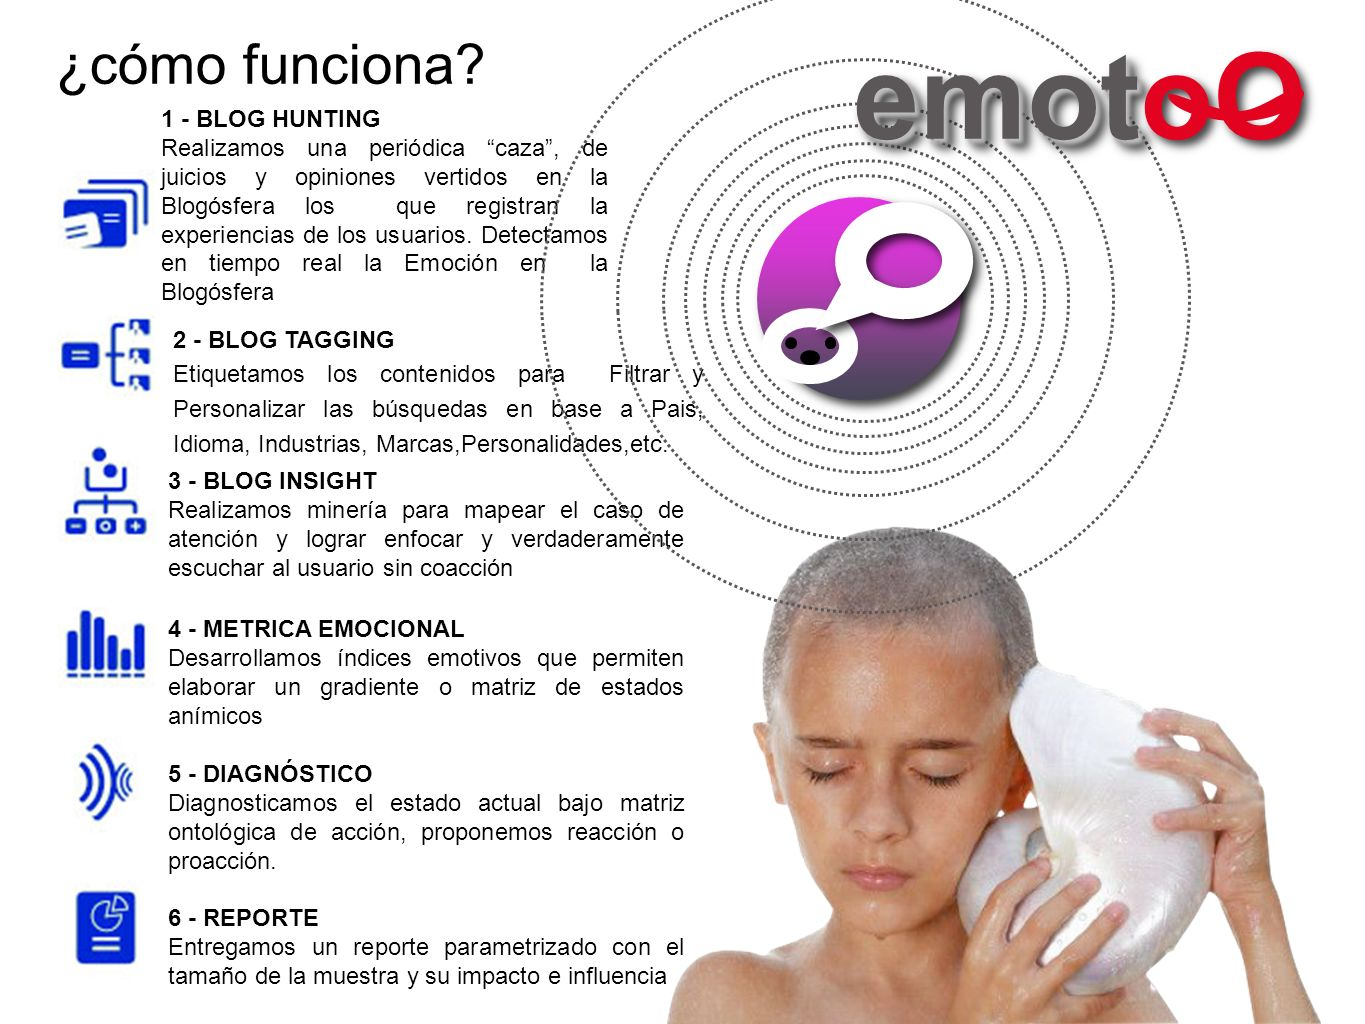 emotoO ¿cómo funciona 1 - BLOG HUNTING